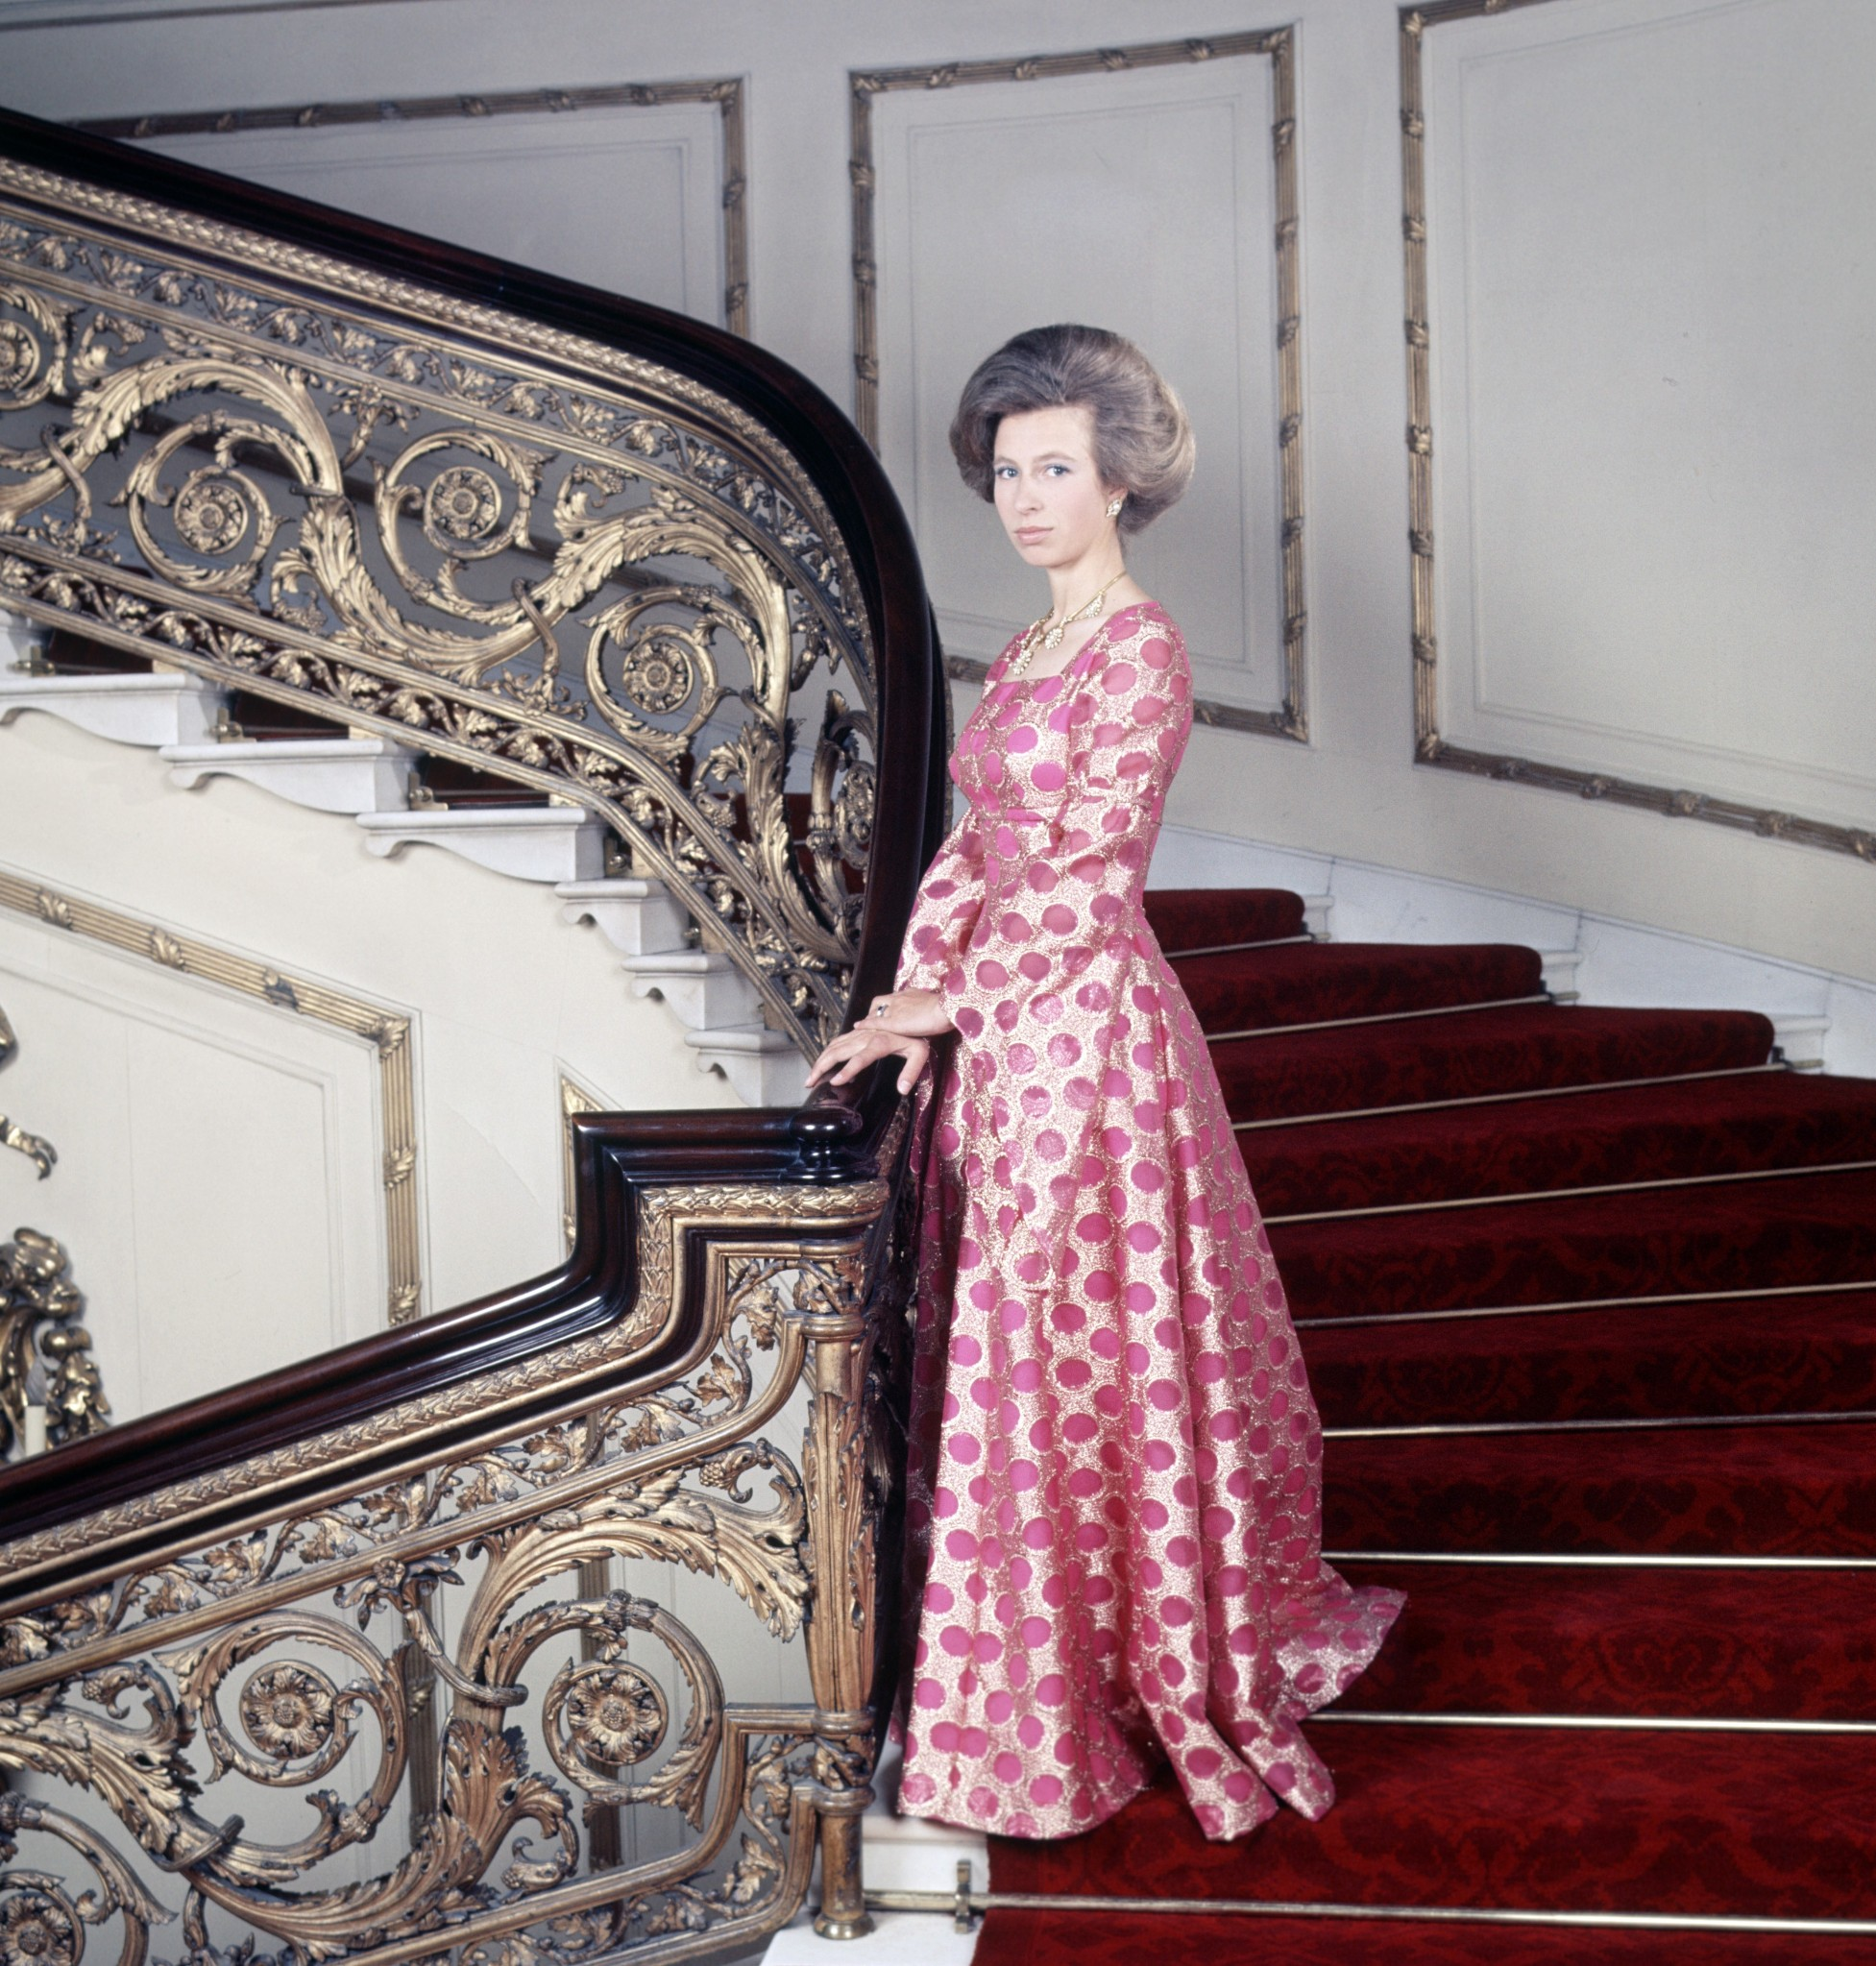 Princess Anne on the Grand staircase of Buckingham Palace Princess Anne,Image: 233267218, License: Rights-managed, Restrictions: , Model Release: no, Credit line: Reginald Davis / Shutterstock Editorial / Profimedia